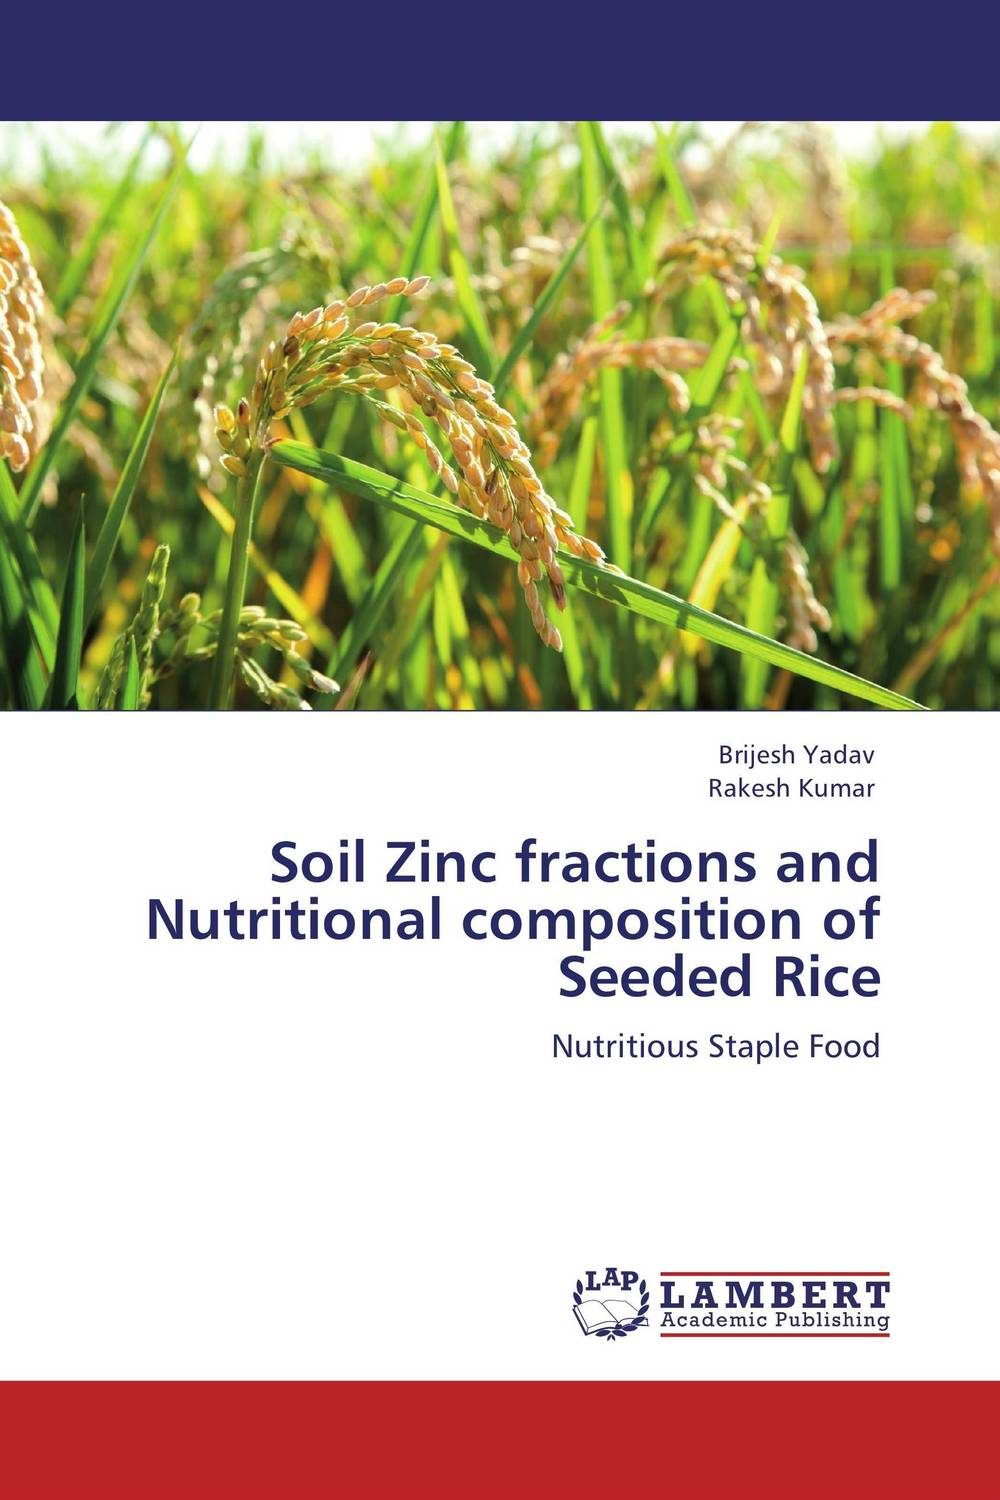 Soil Zinc fractions and Nutritional composition of Seeded Rice brijesh yadav and rakesh kumar soil zinc fractions and nutritional composition of seeded rice